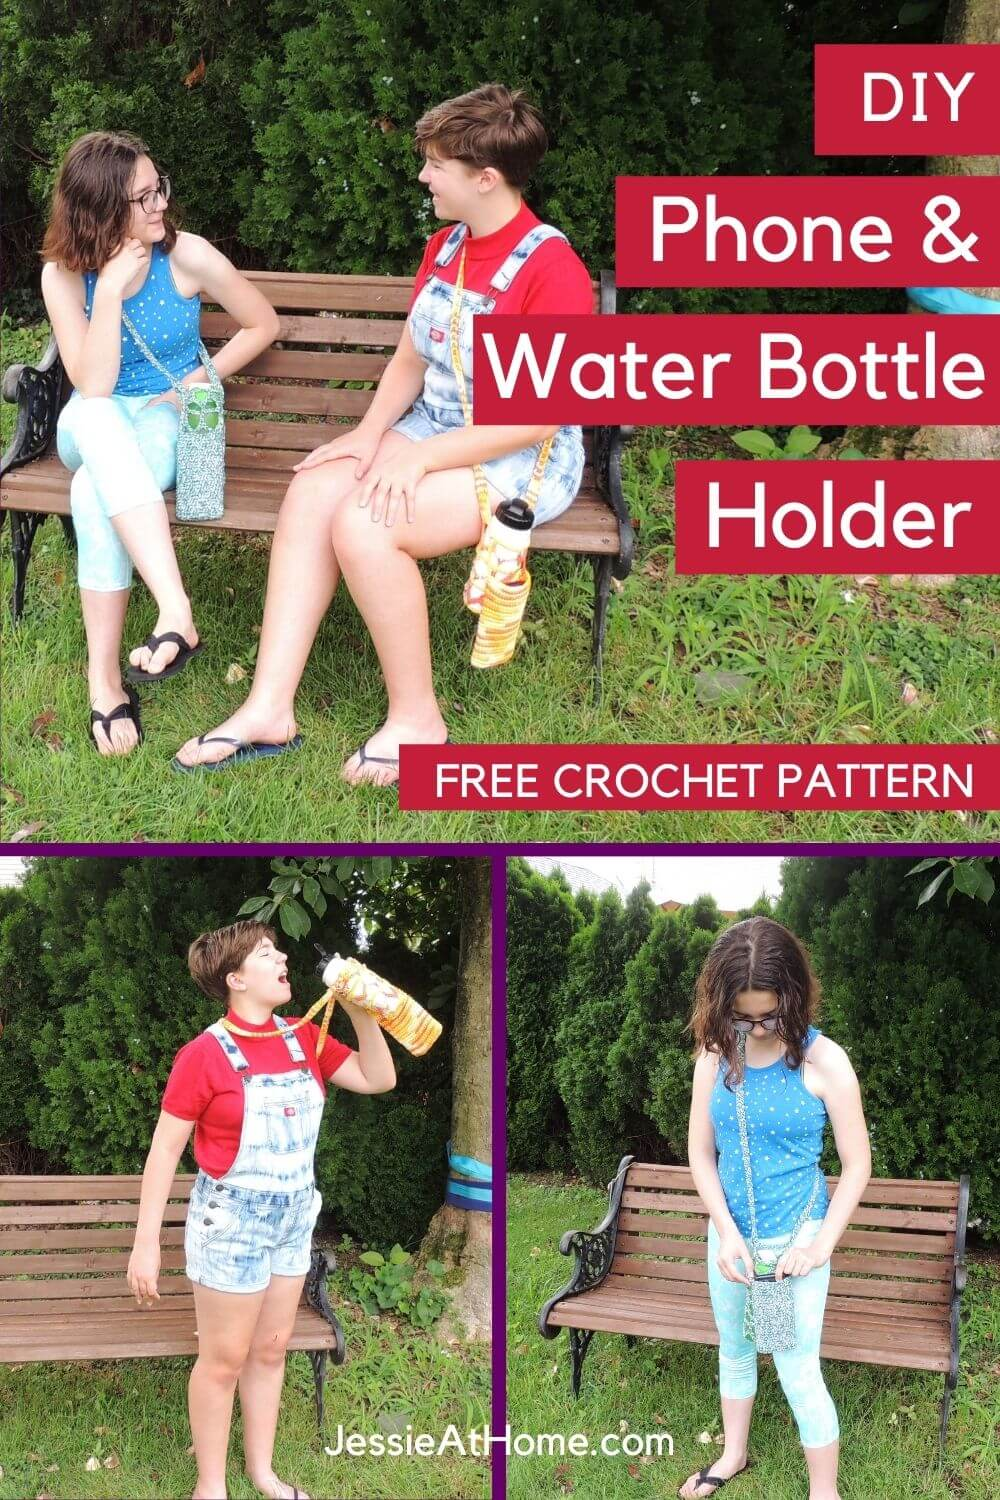 Call Me Hydrated - Sensational Water Bottle and Phone Holder